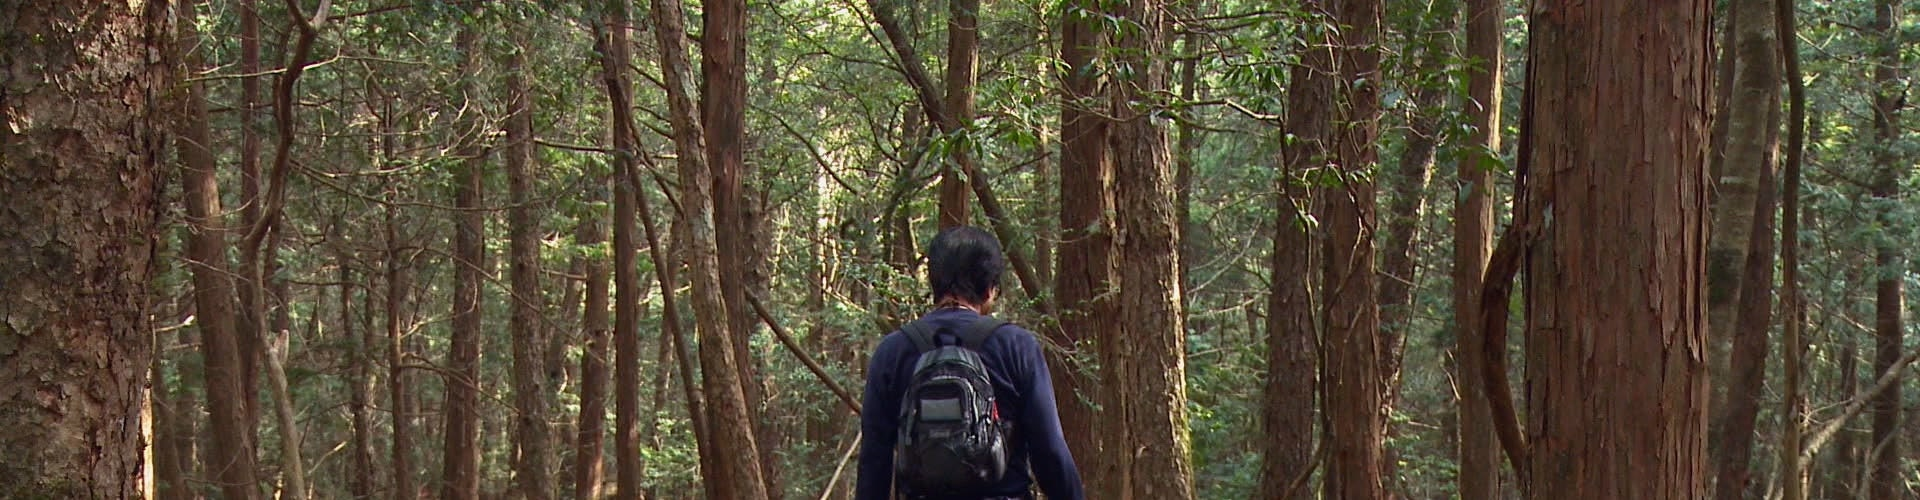 Watch Aokigahara Suicide Forest Online